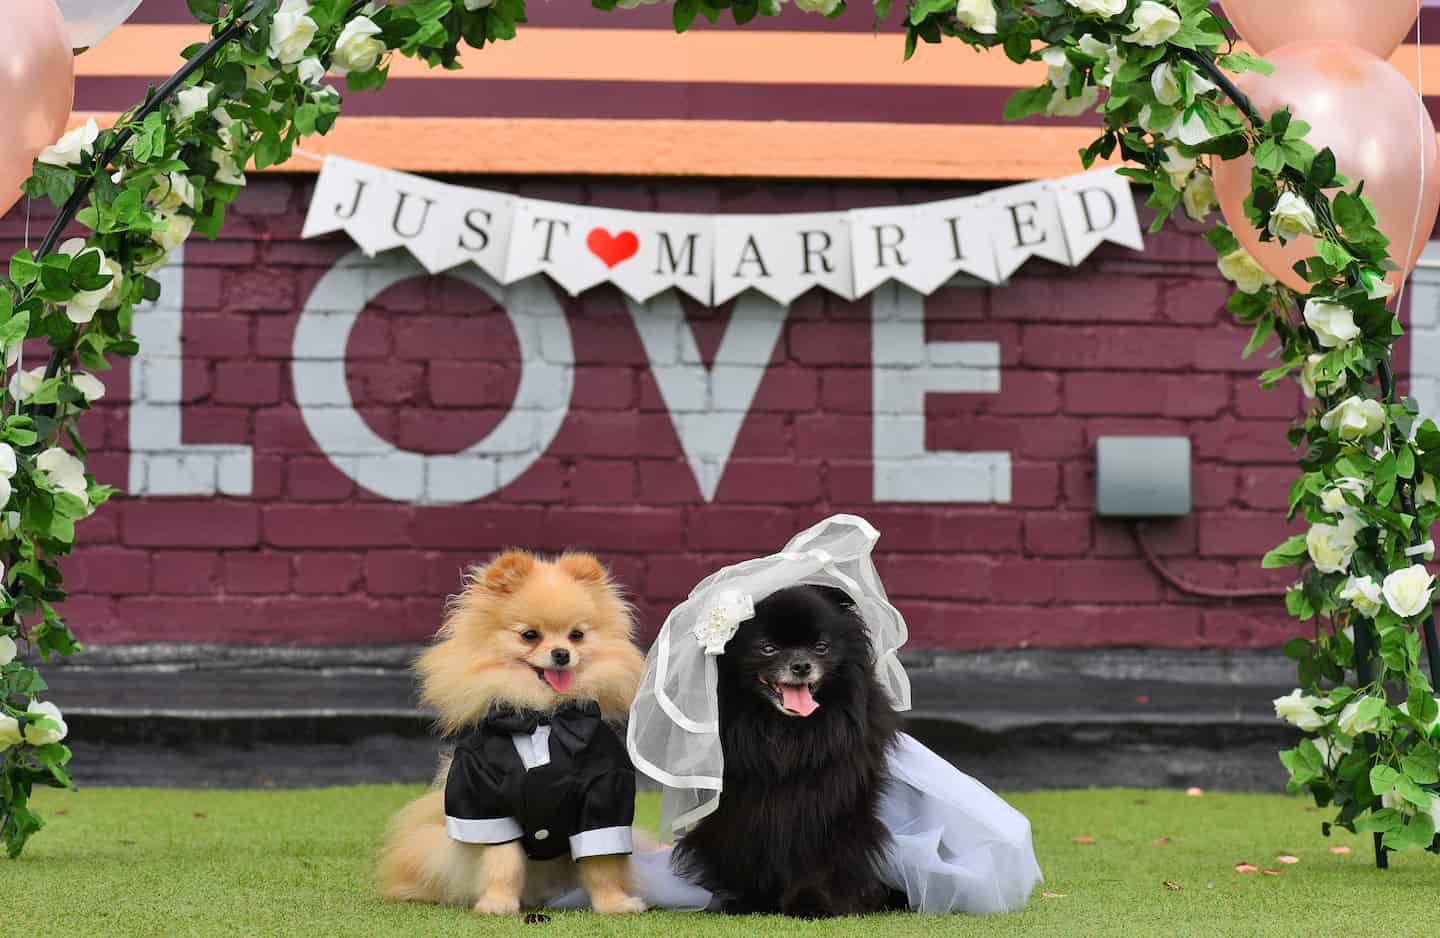 London Dog Wedding At The Rooftop Film Club Wooftop Wedding Service 4